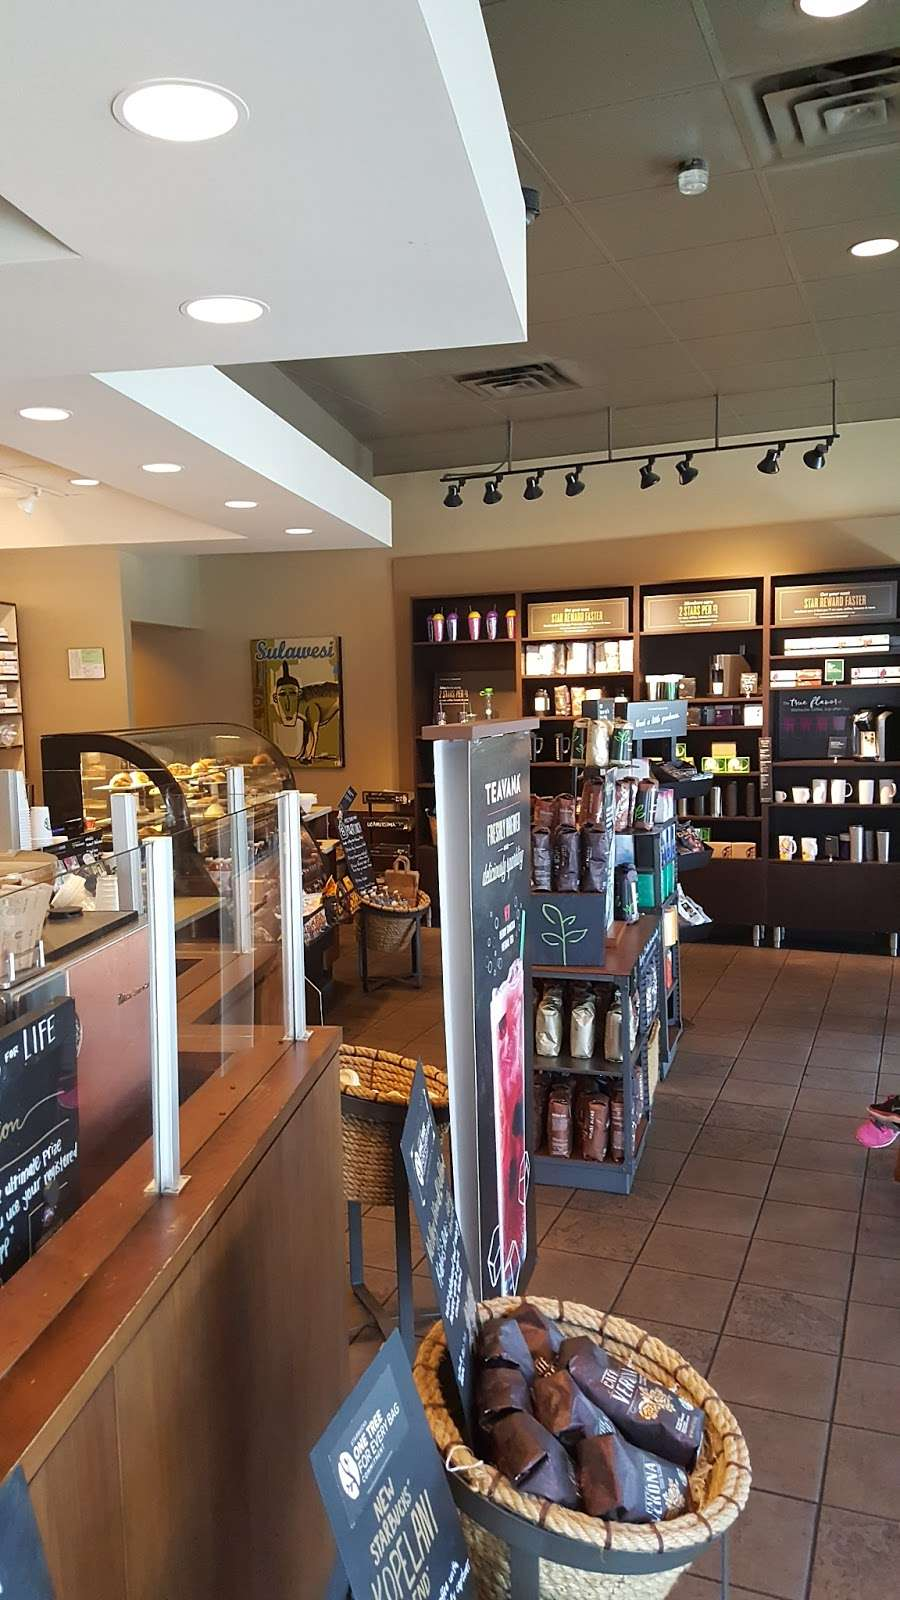 Starbucks - cafe  | Photo 10 of 10 | Address: 7876 Valley View St, Buena Park, CA 90620, USA | Phone: (714) 228-9827